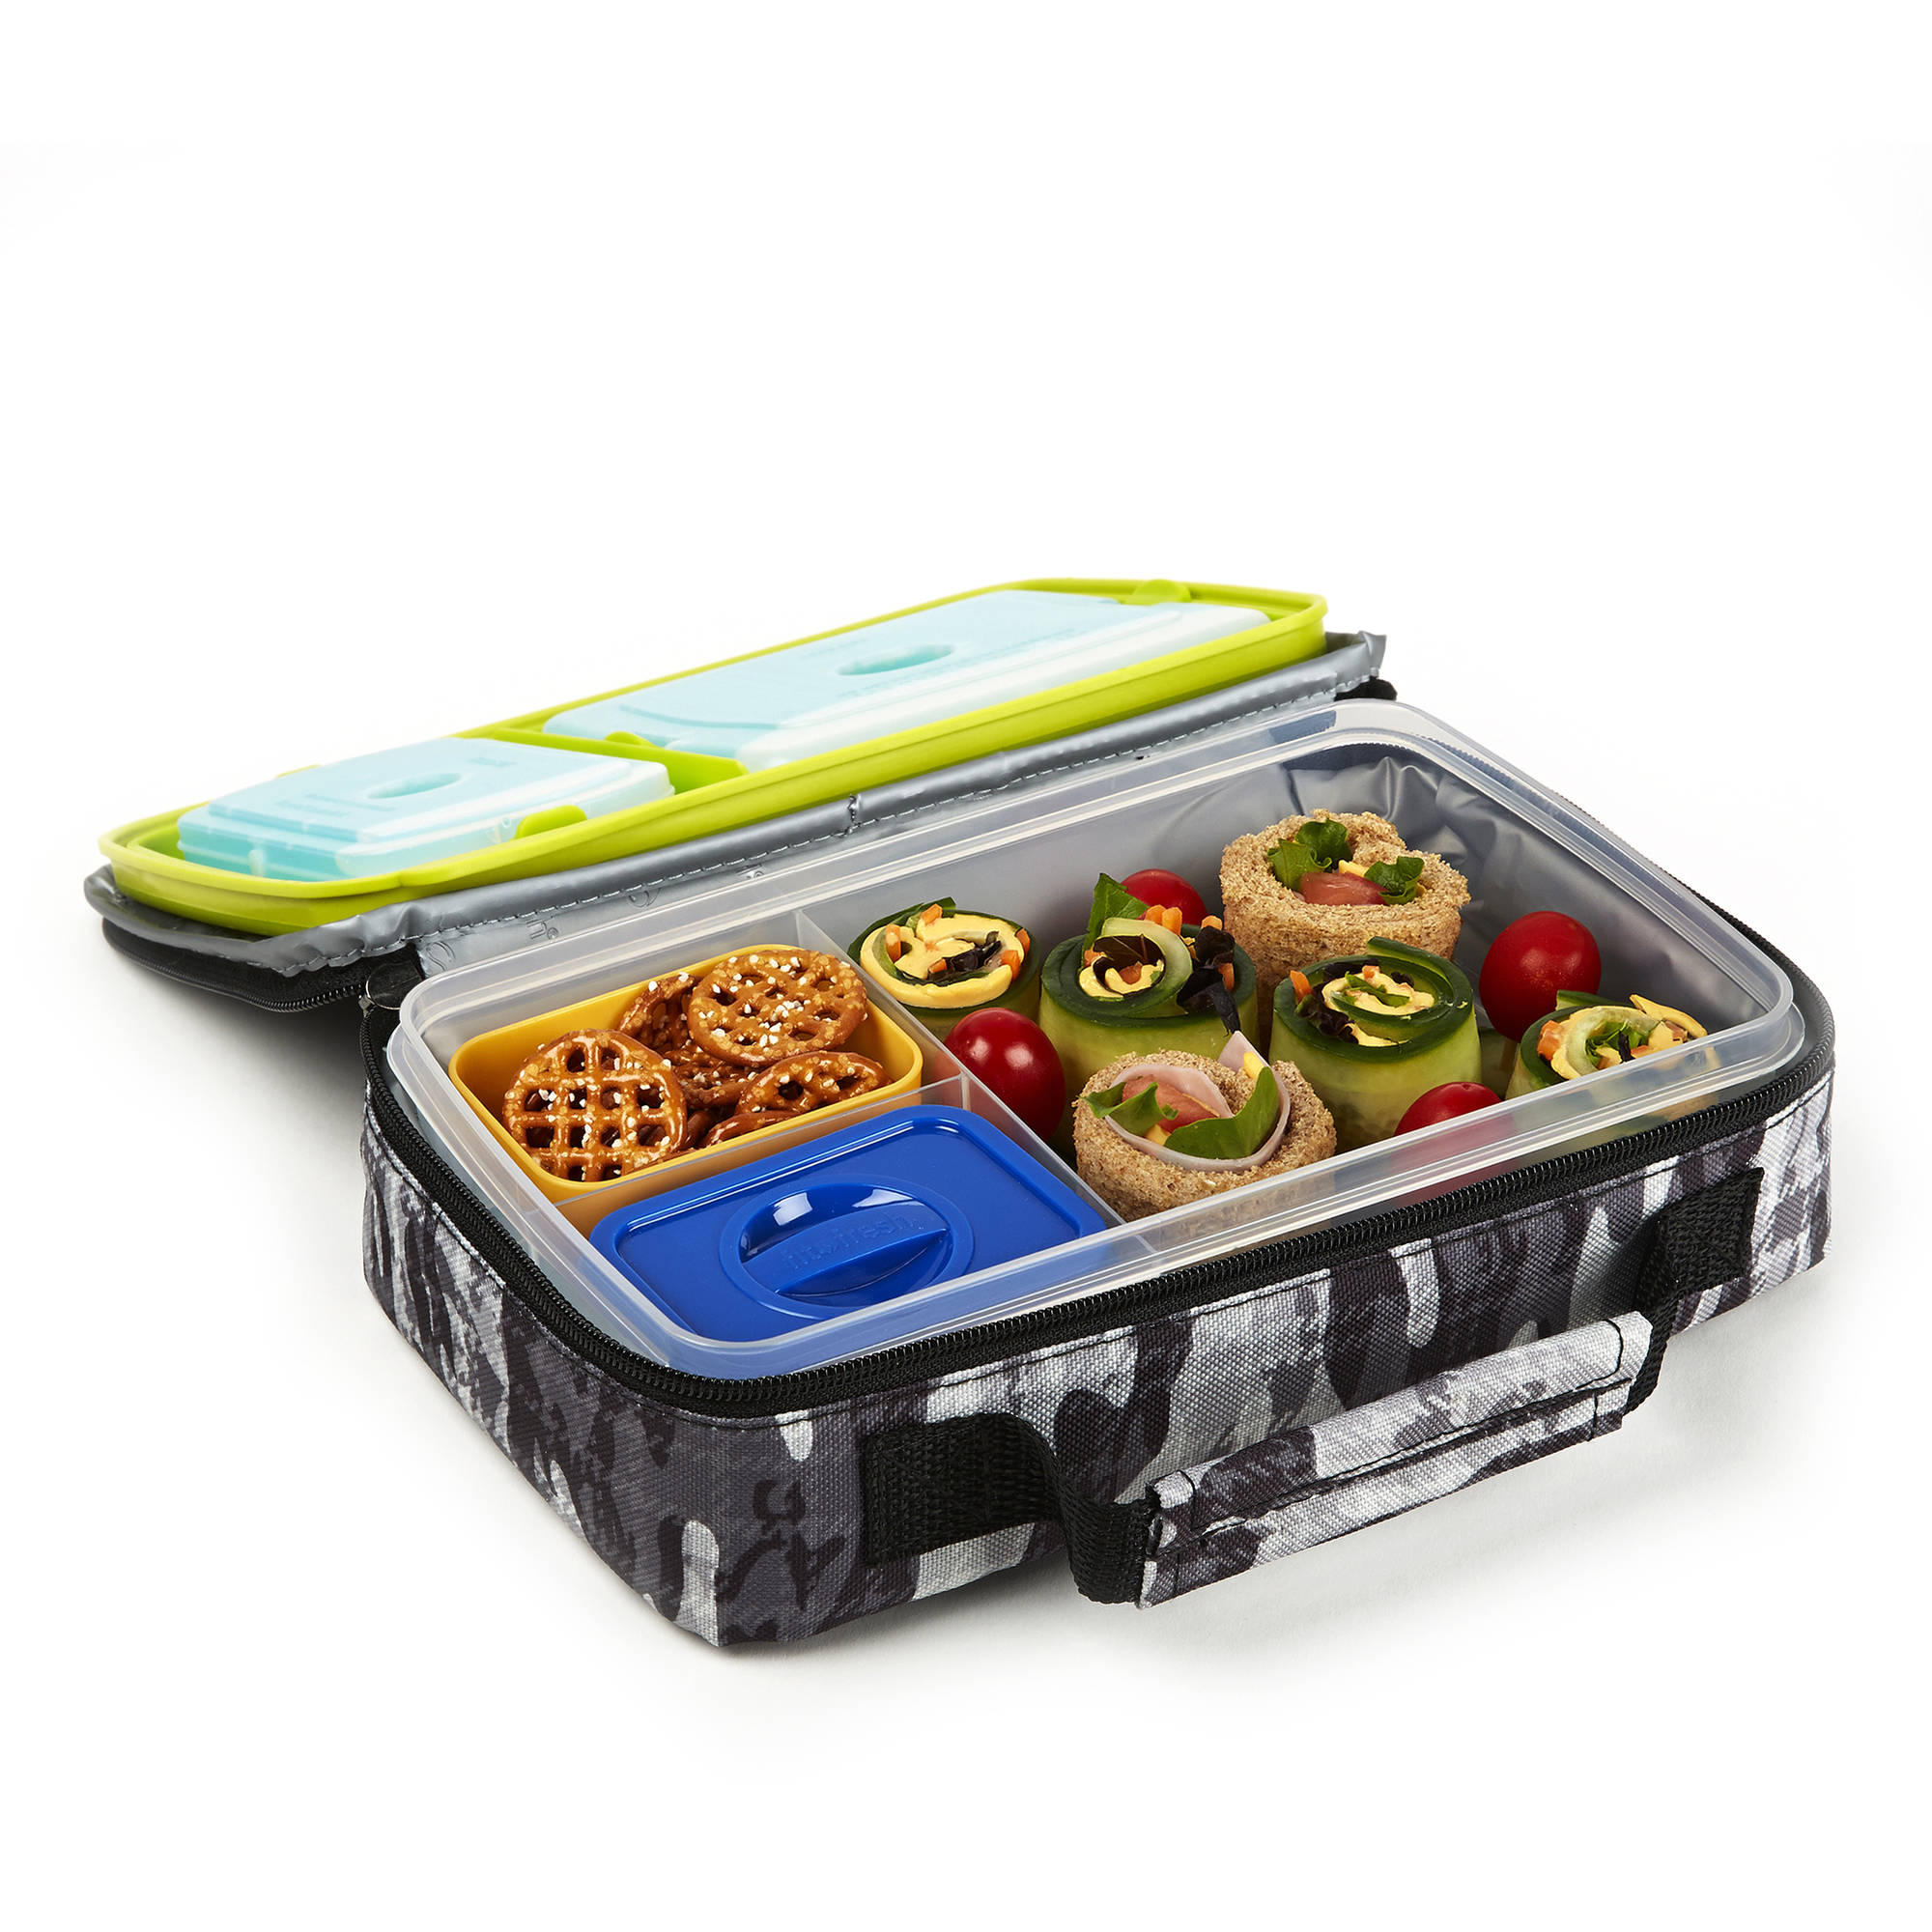 LOTG Lunch Kit, Bento Boy Biker